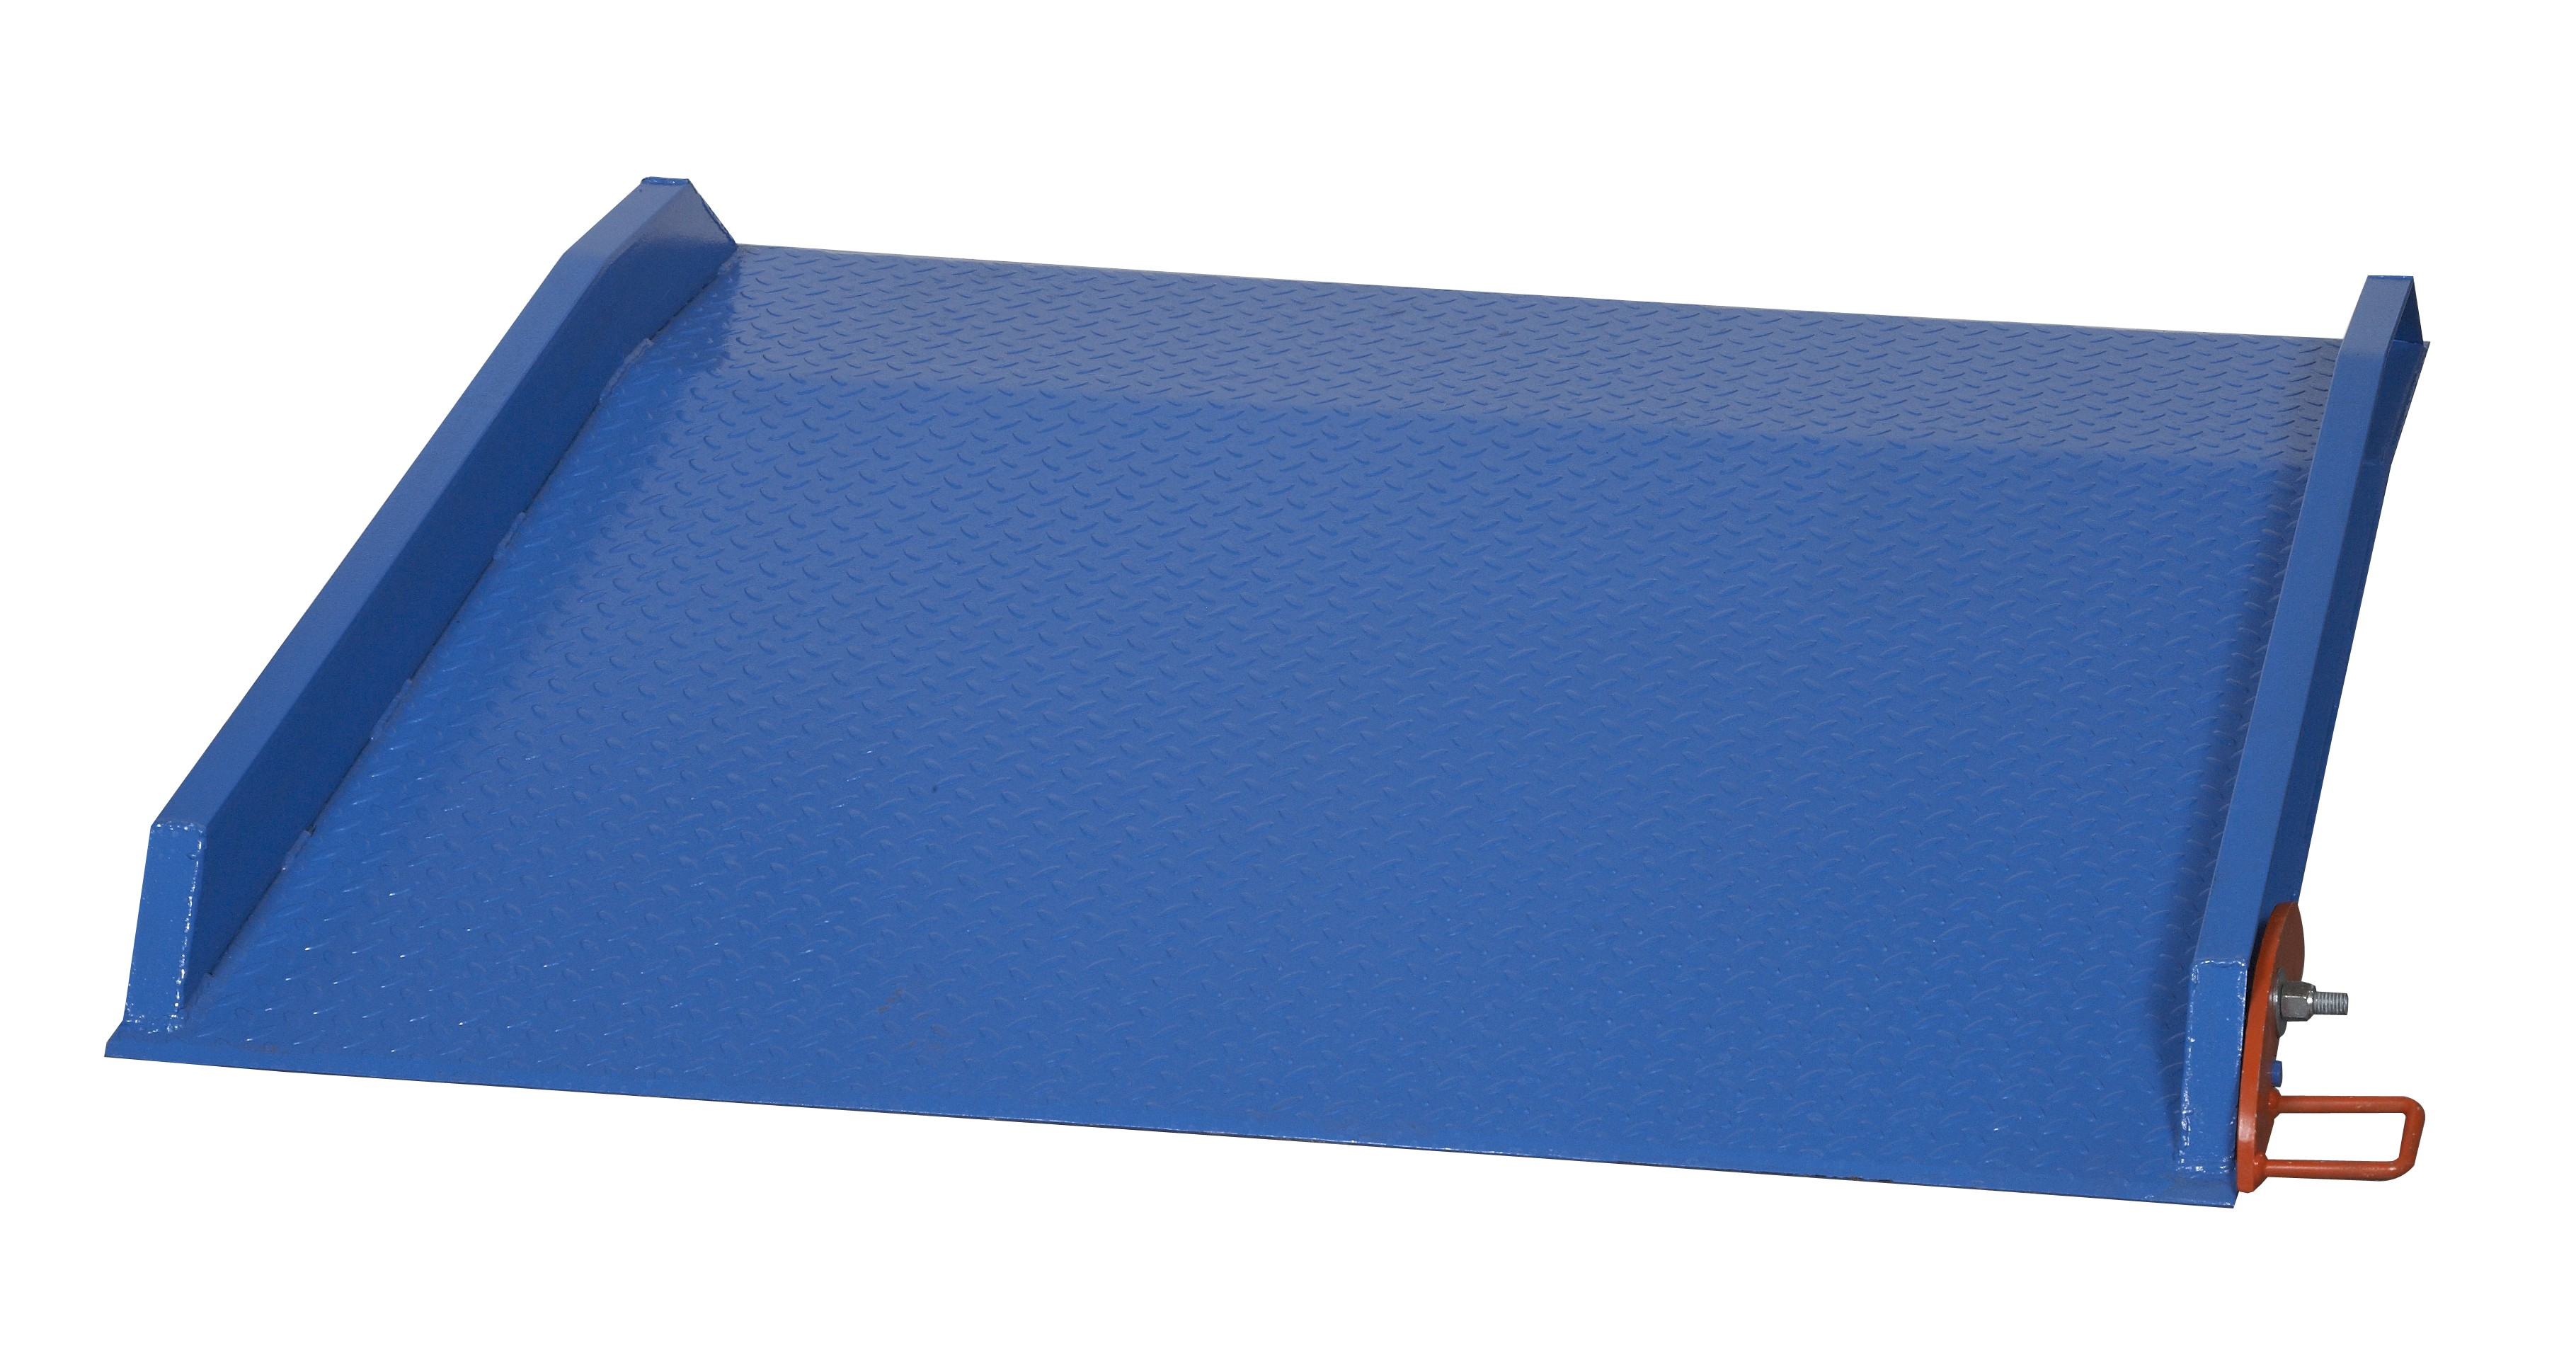 Blue Rhino Economy Steel Dockboards